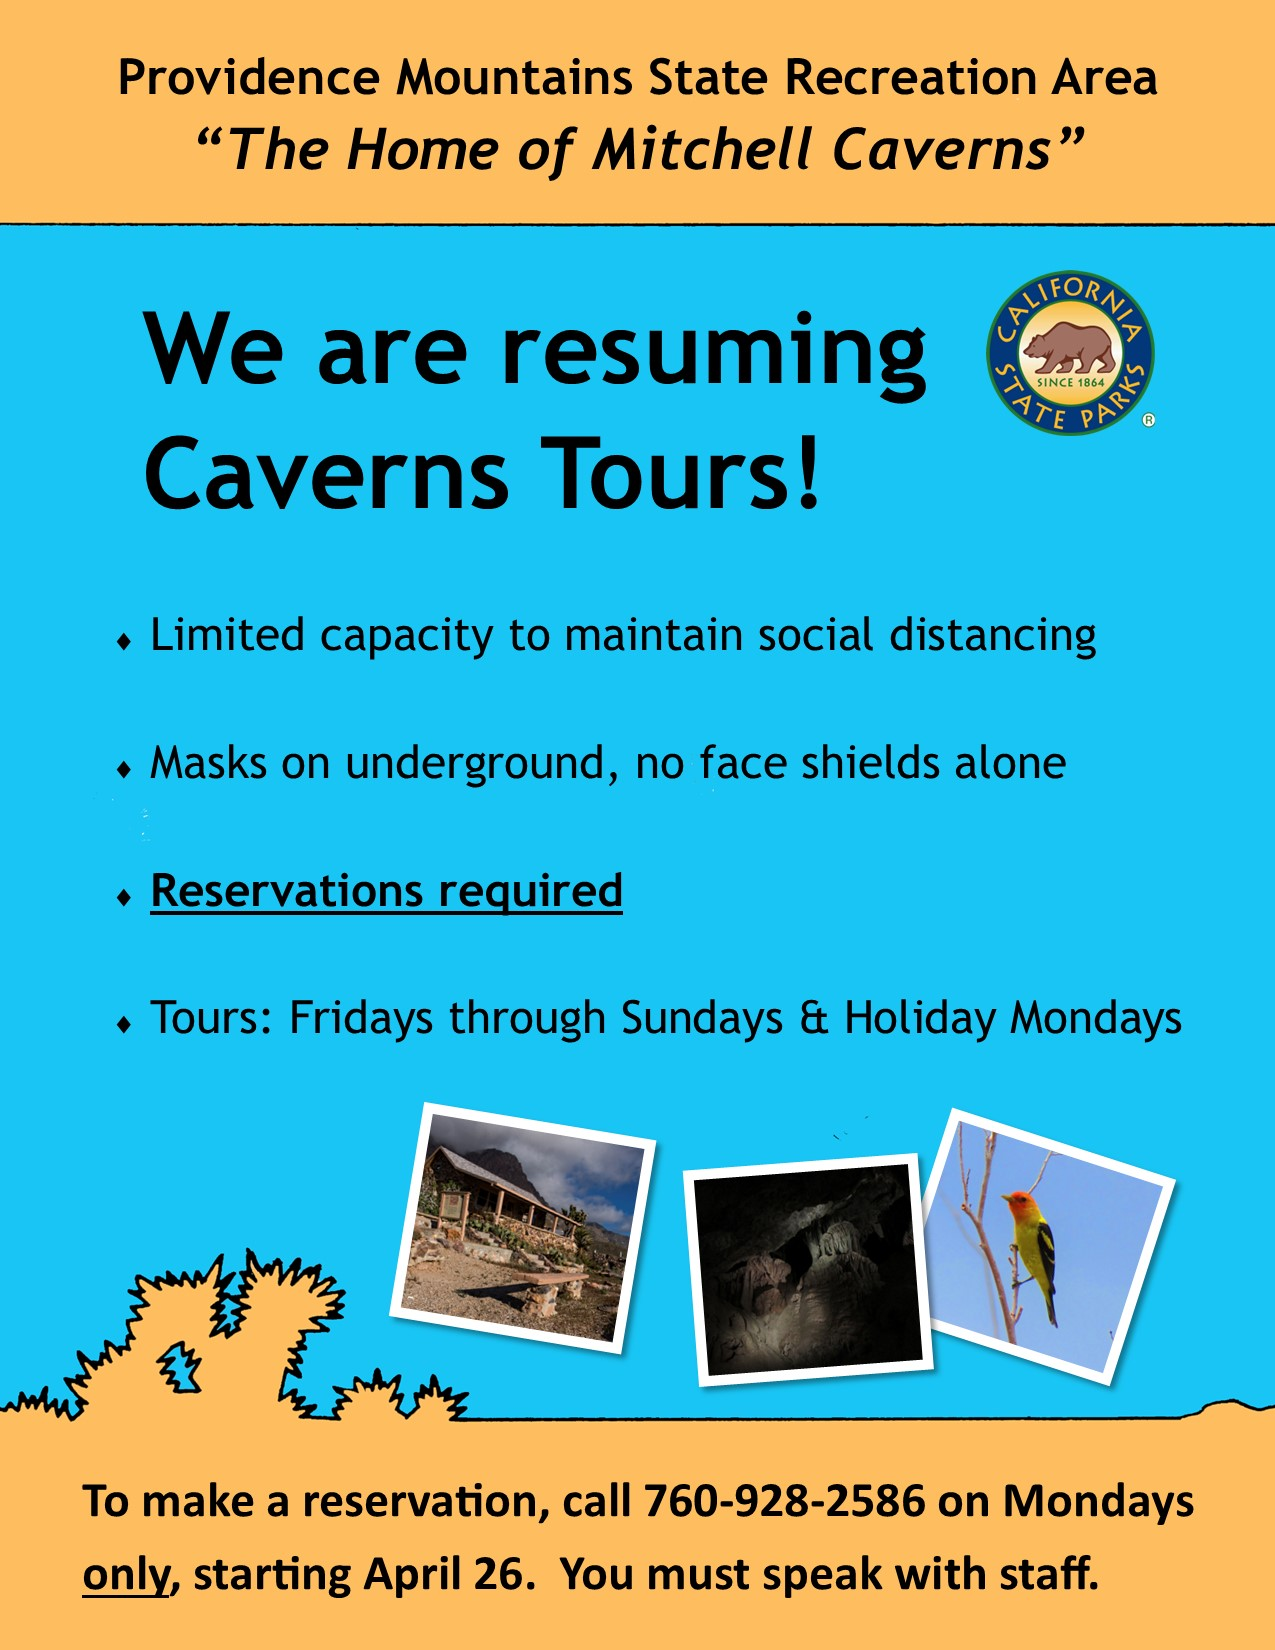 Mitchell Caverns Tours are resuming with limited capacity and masks required underground.